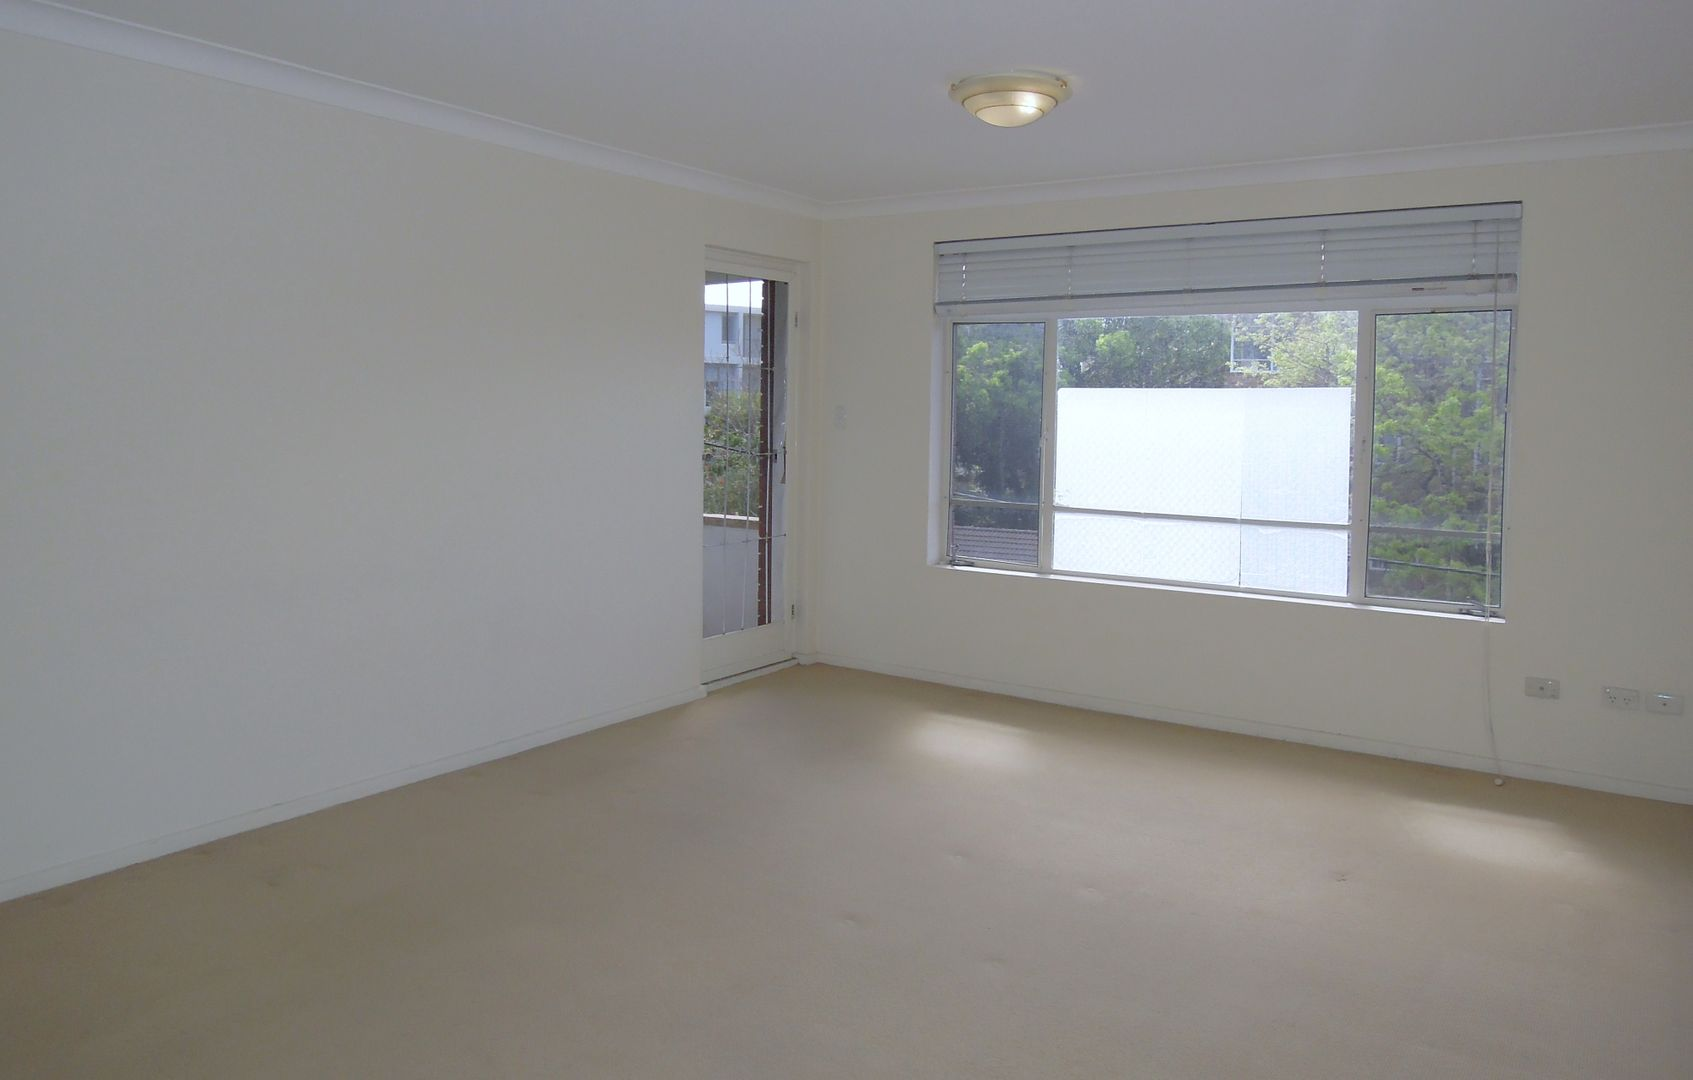 9/42 Anderson Street, Chatswood NSW 2067, Image 1